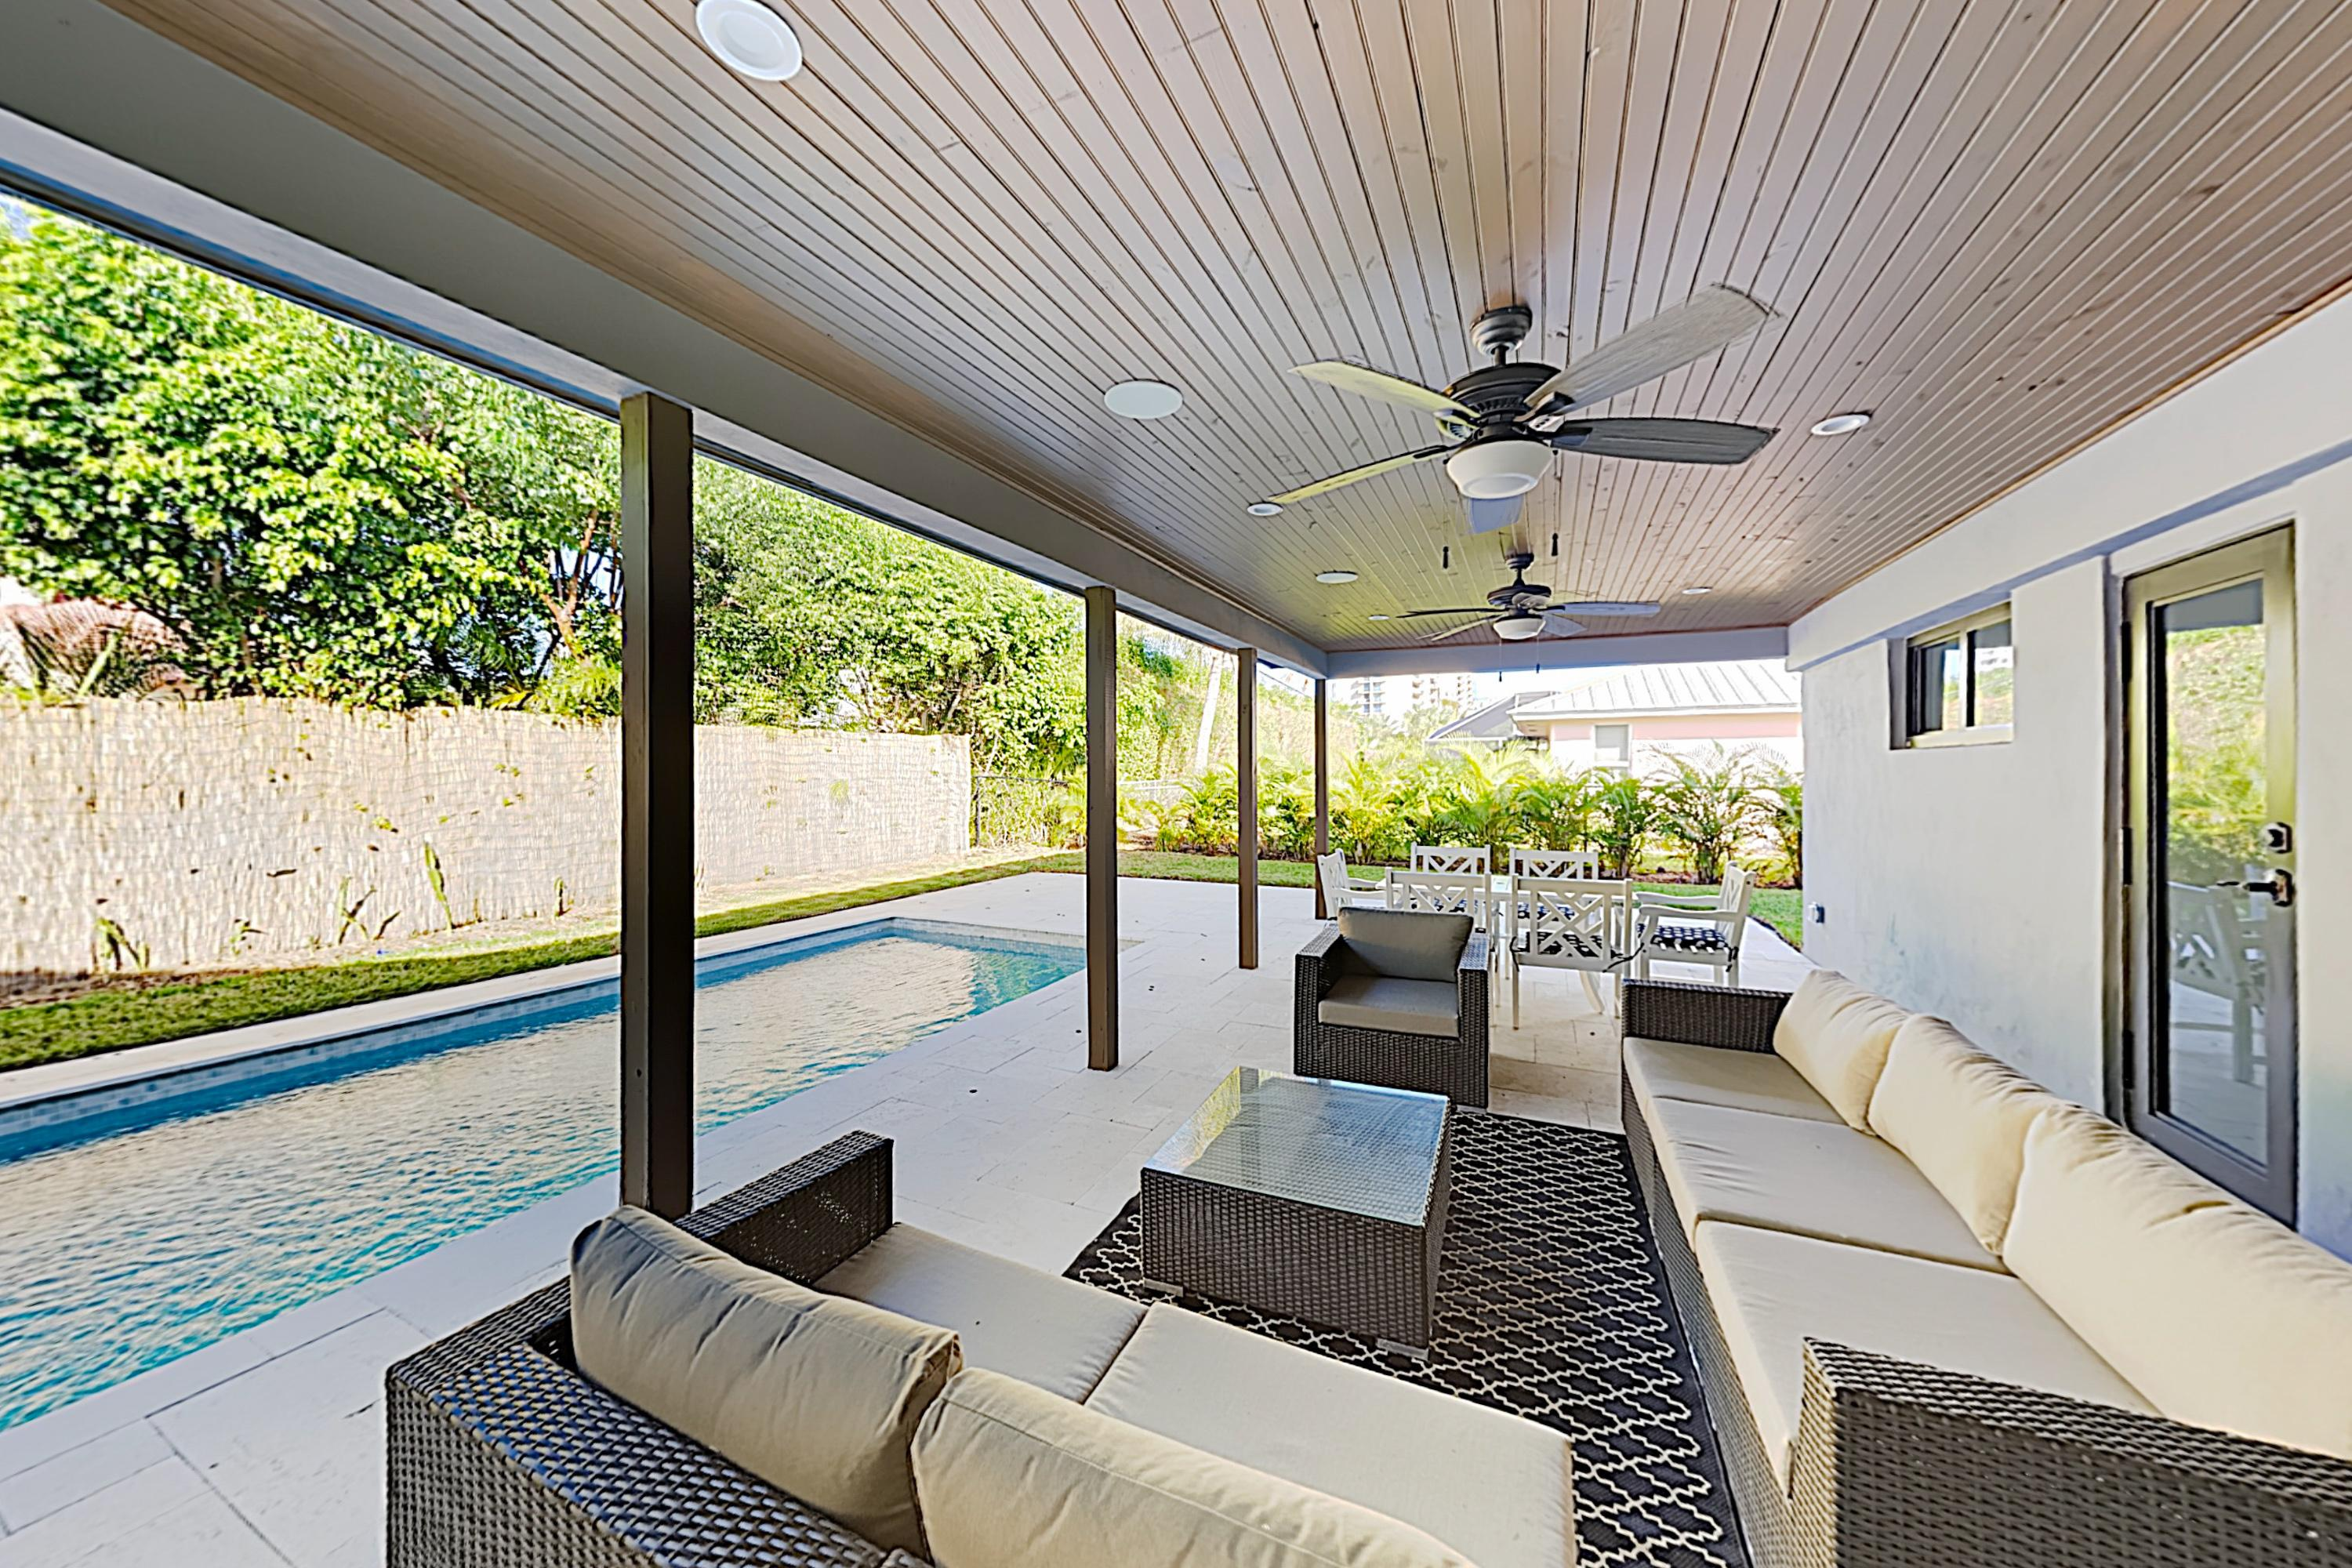 Welcome to Riviera Beach! This house is professionally managed by TurnKey Vacation Rentals.